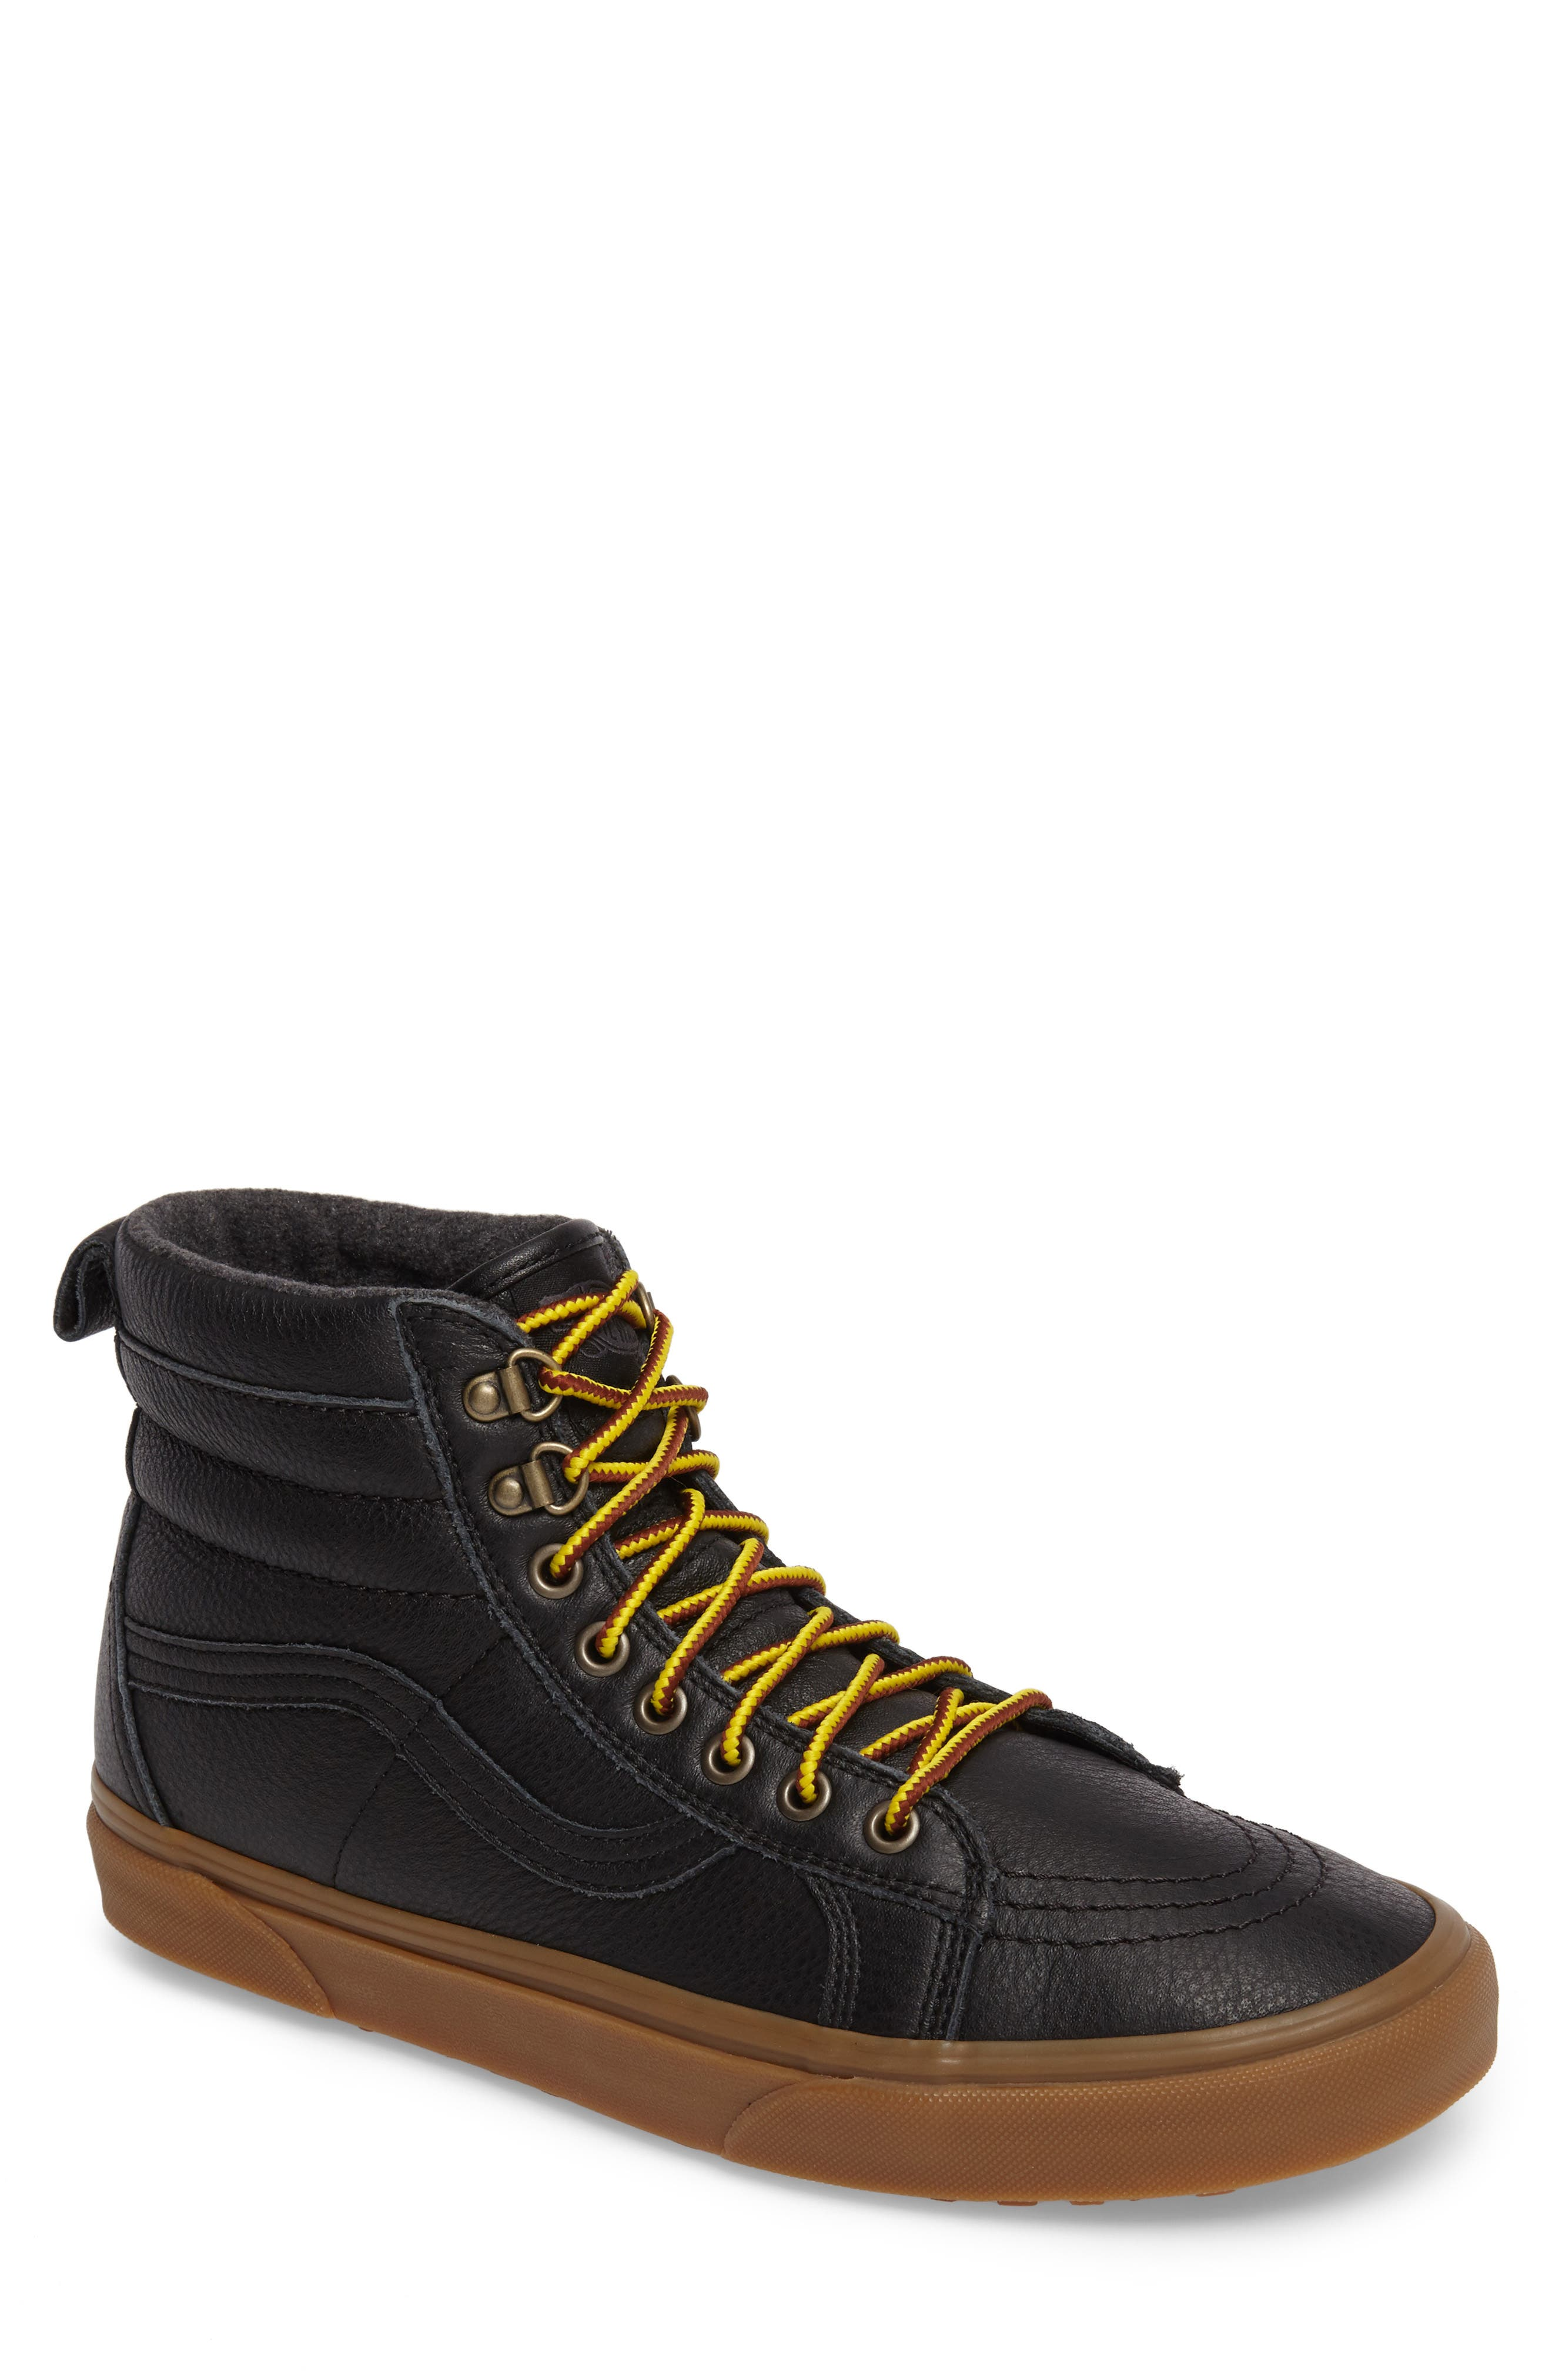 SK8-Hi MTE Insulated Water Resistant Sneaker,                             Main thumbnail 1, color,                             001